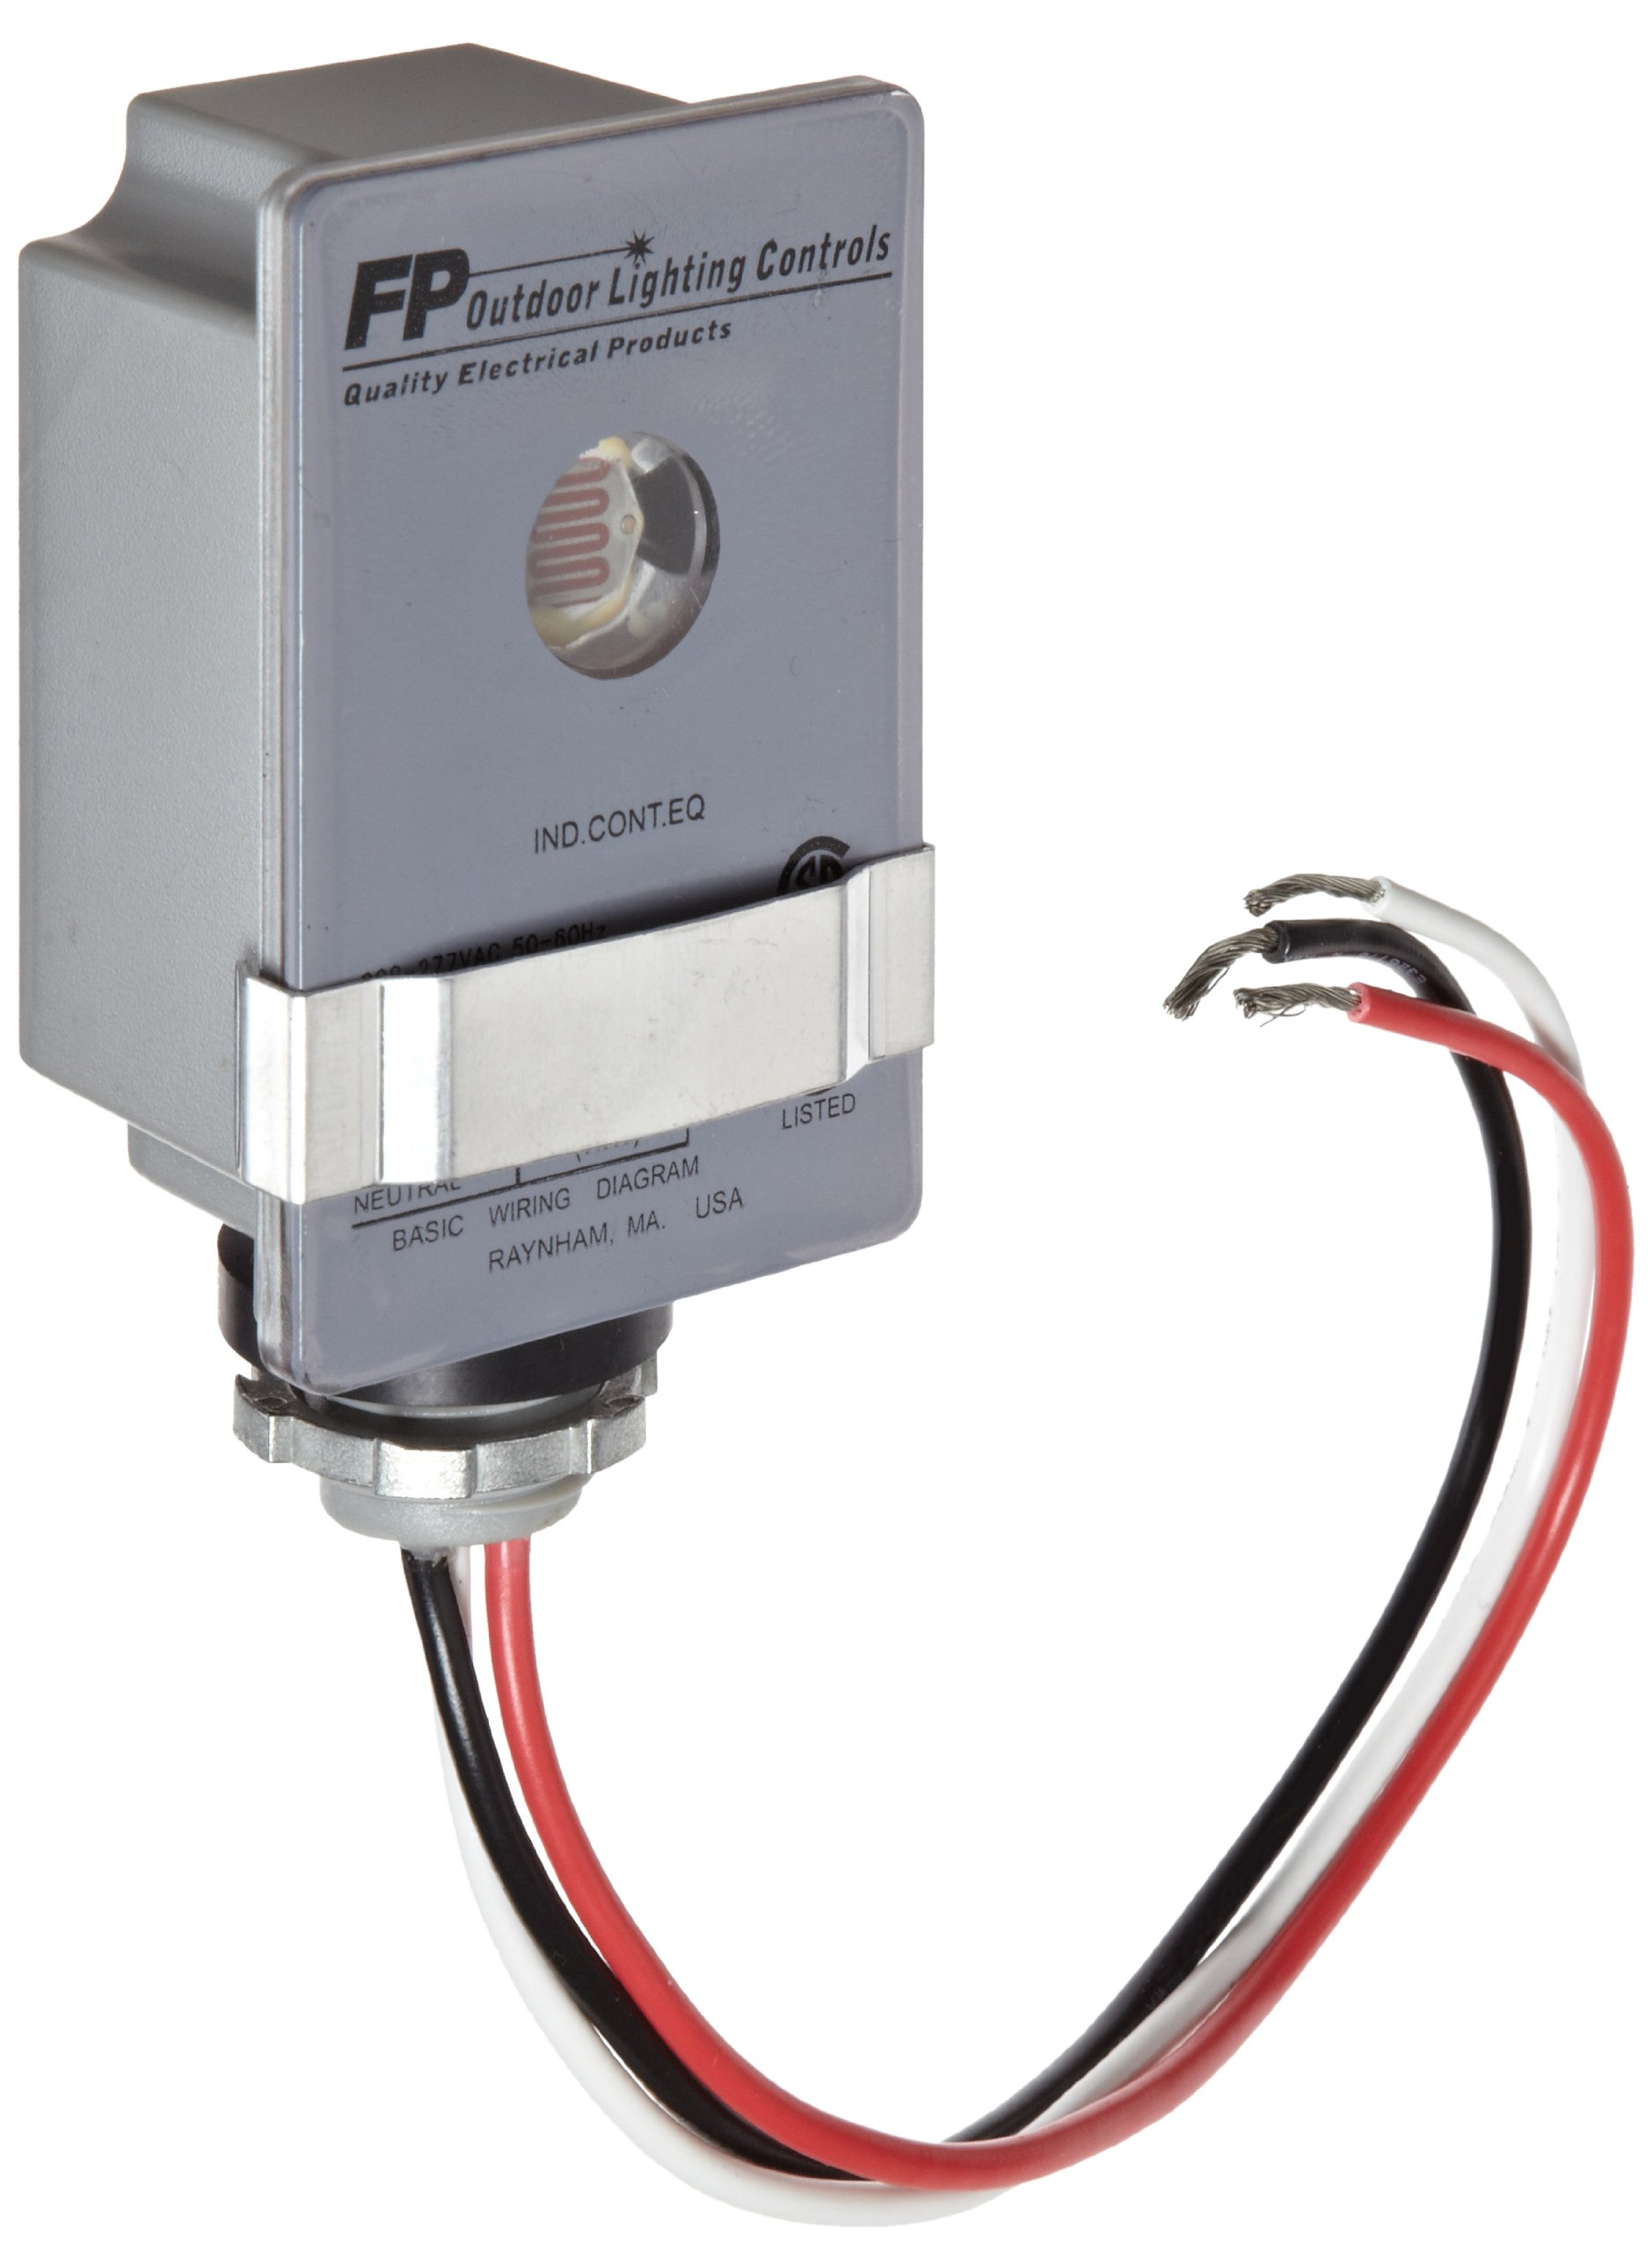 Morris Products 39012 Photocontrols Fixed Base, 2000W Tungsten Rating, 1000 (VA) Ballast Rating, 208-277 Voltage